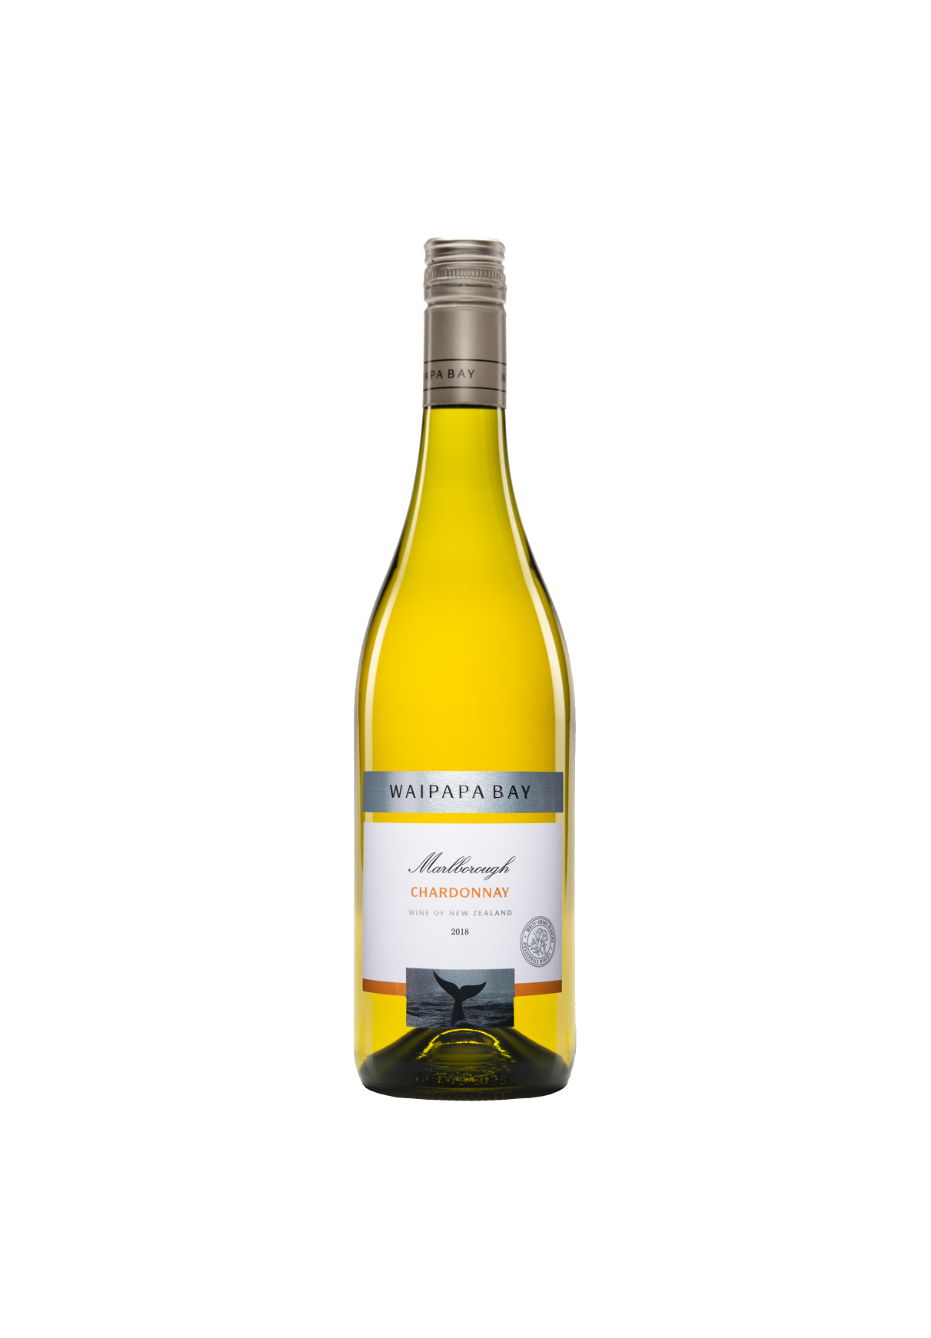 Waipapa Bay Marlborough Chardonnay 2019